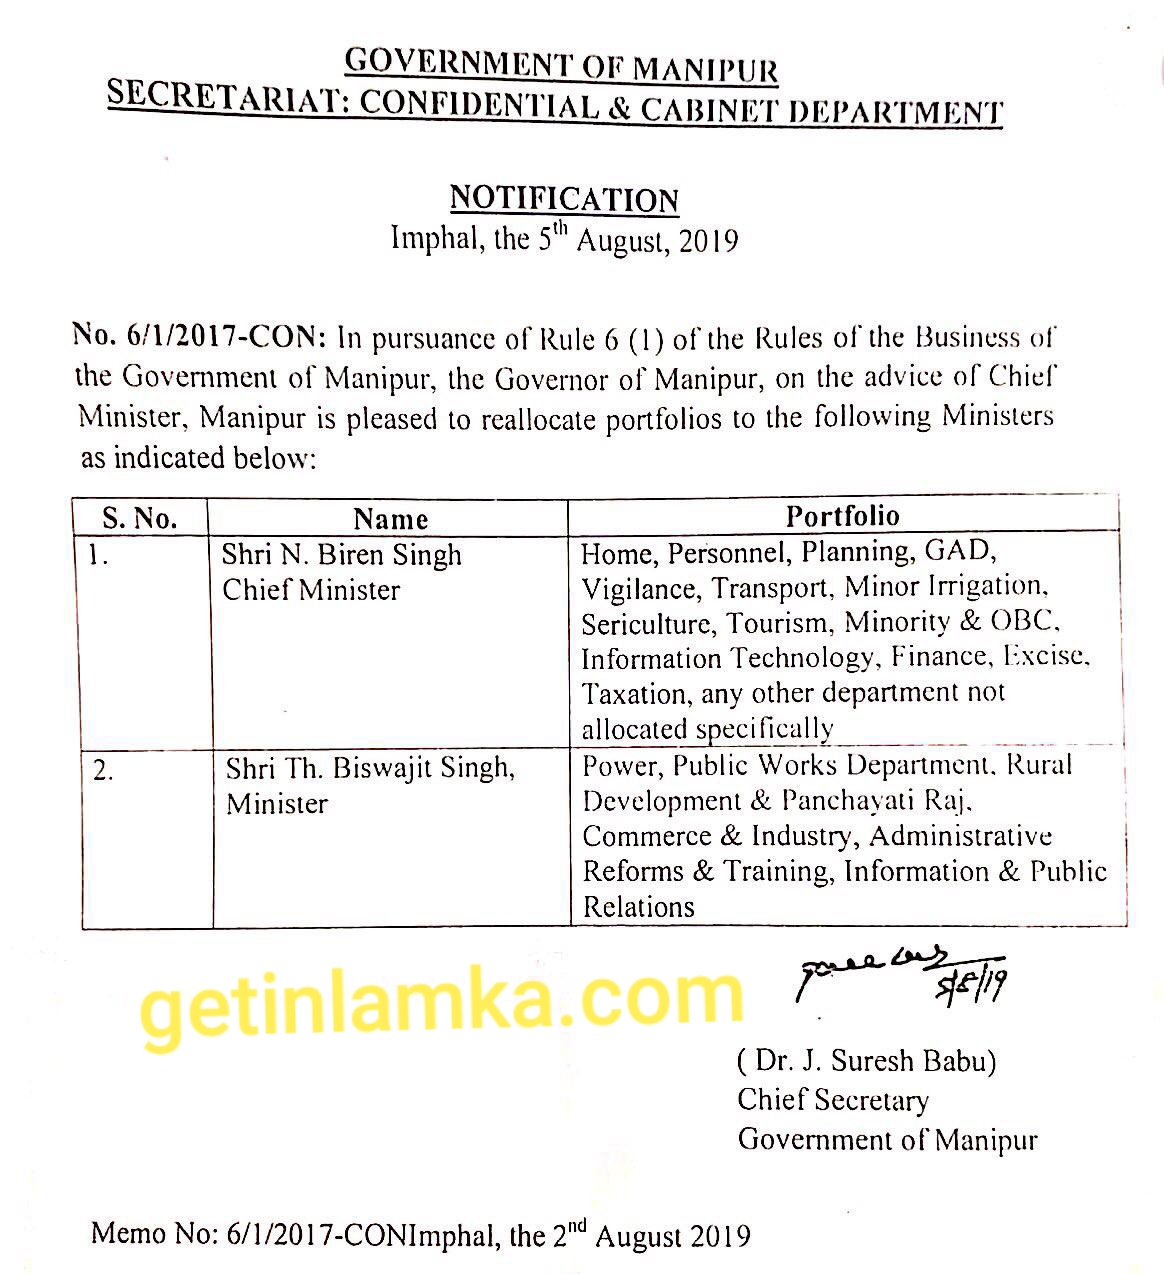 Relocate portfolio of the following Ministers ordered By: Dr.J.Suresh Babu Chief Secretary, Government of Manipur